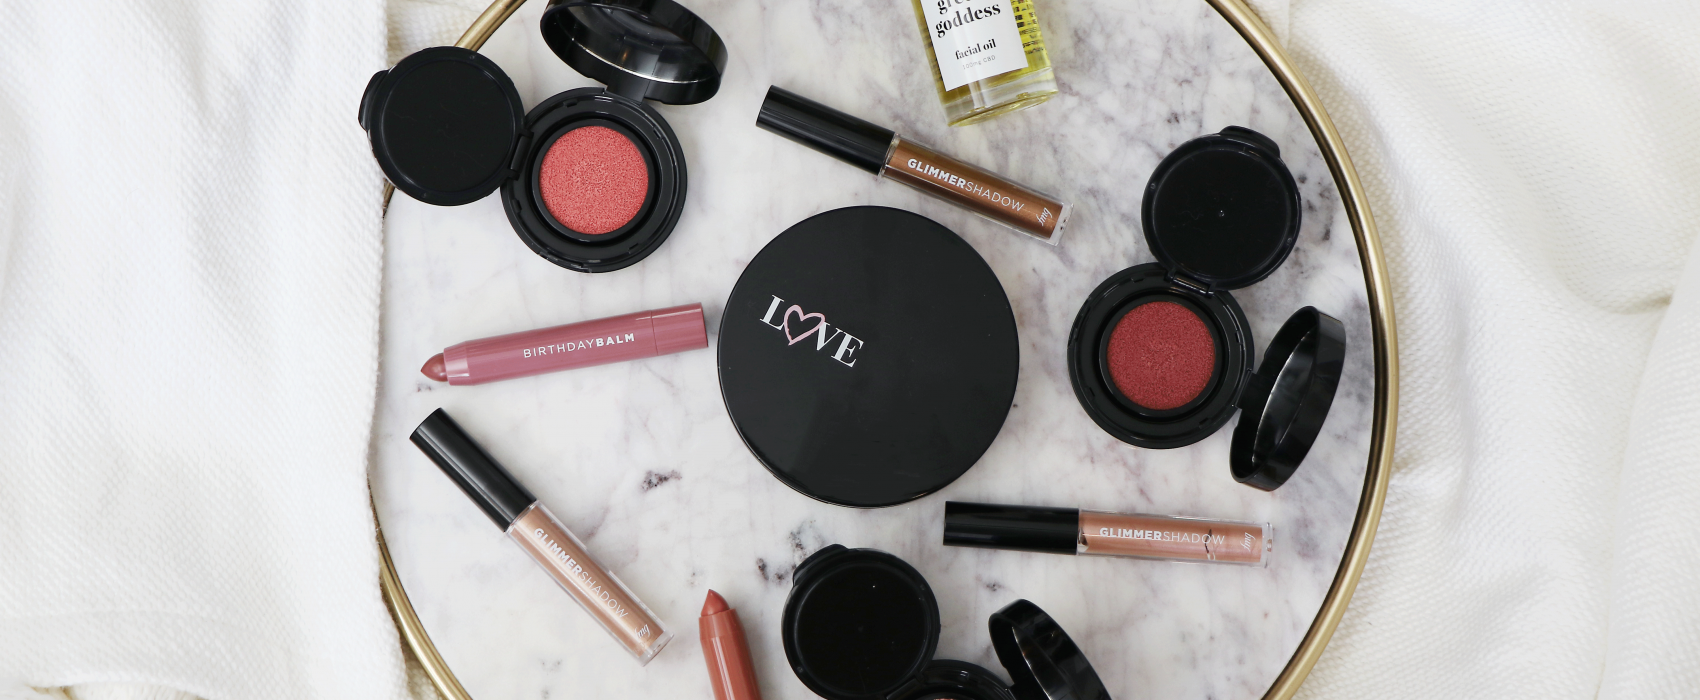 Let's be honest - working from home is in full effect. Looking for the perfect working from home beauty look without feeling overdone or underdone for those zoom call? Los Angeles blogger Jamie Lewis is sharing her top tips HERE!